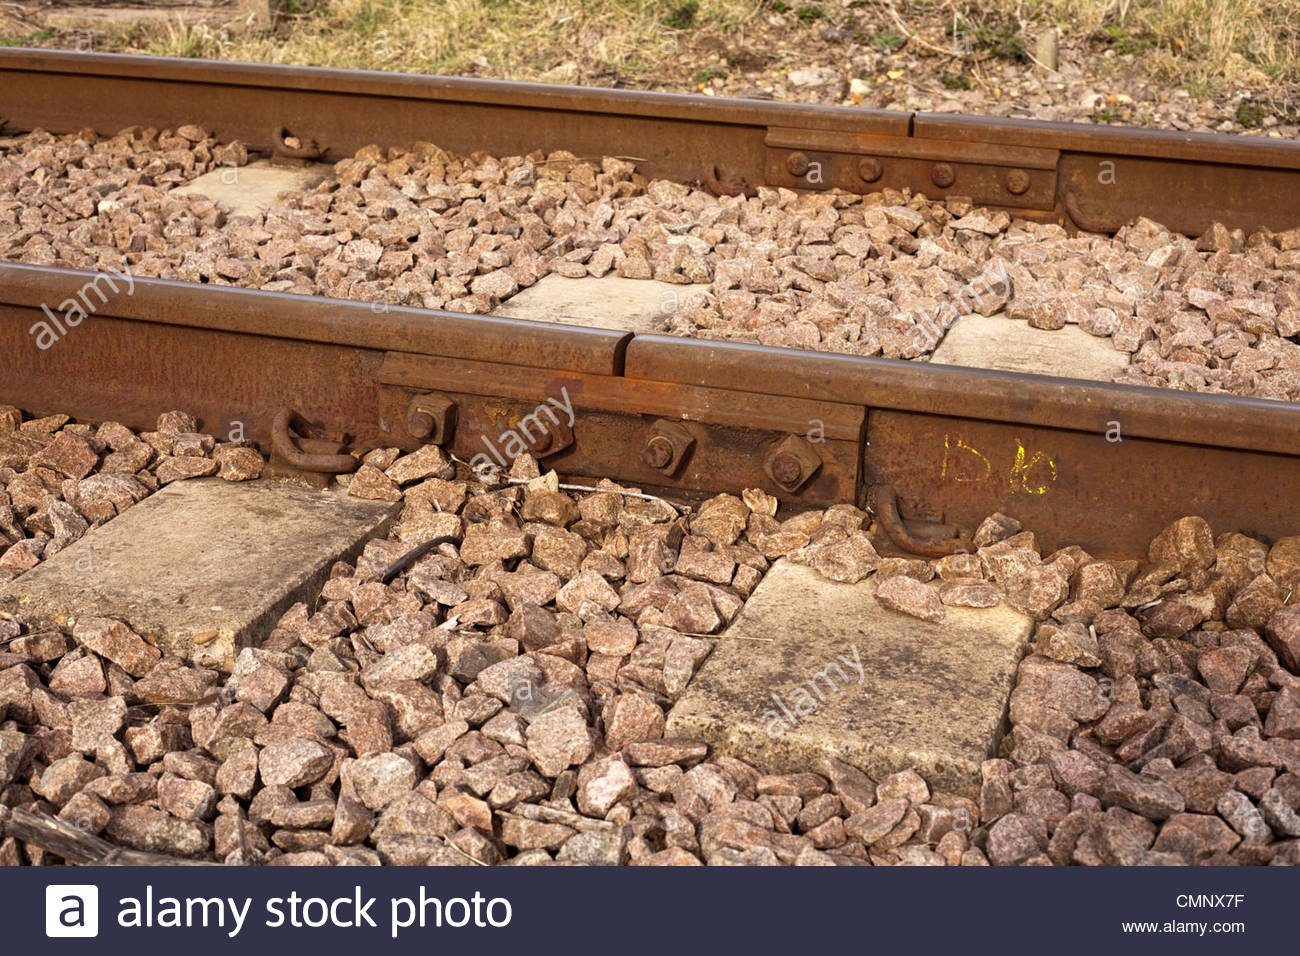 Side view of railway track showing ballast, sleepers and fishplate joint bar - Stock Image